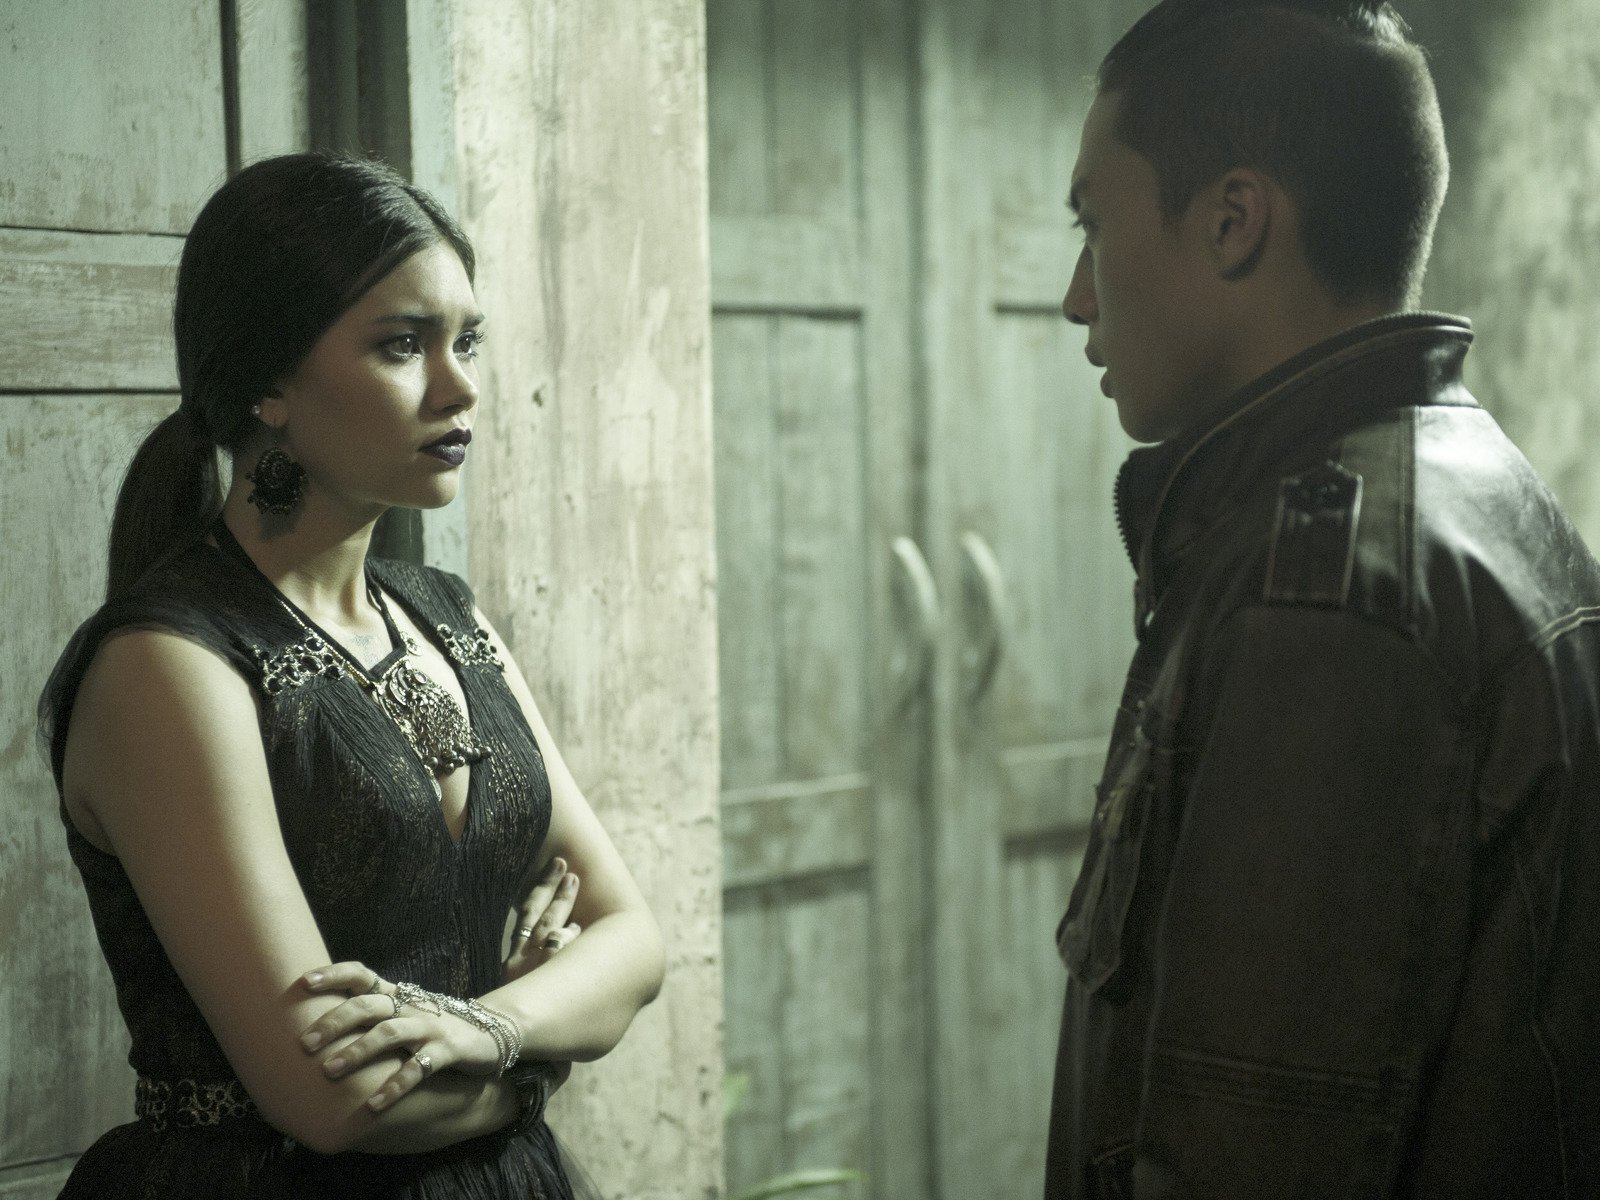 Amazon.com: Watch Halfworlds - Season 2 | Prime Video